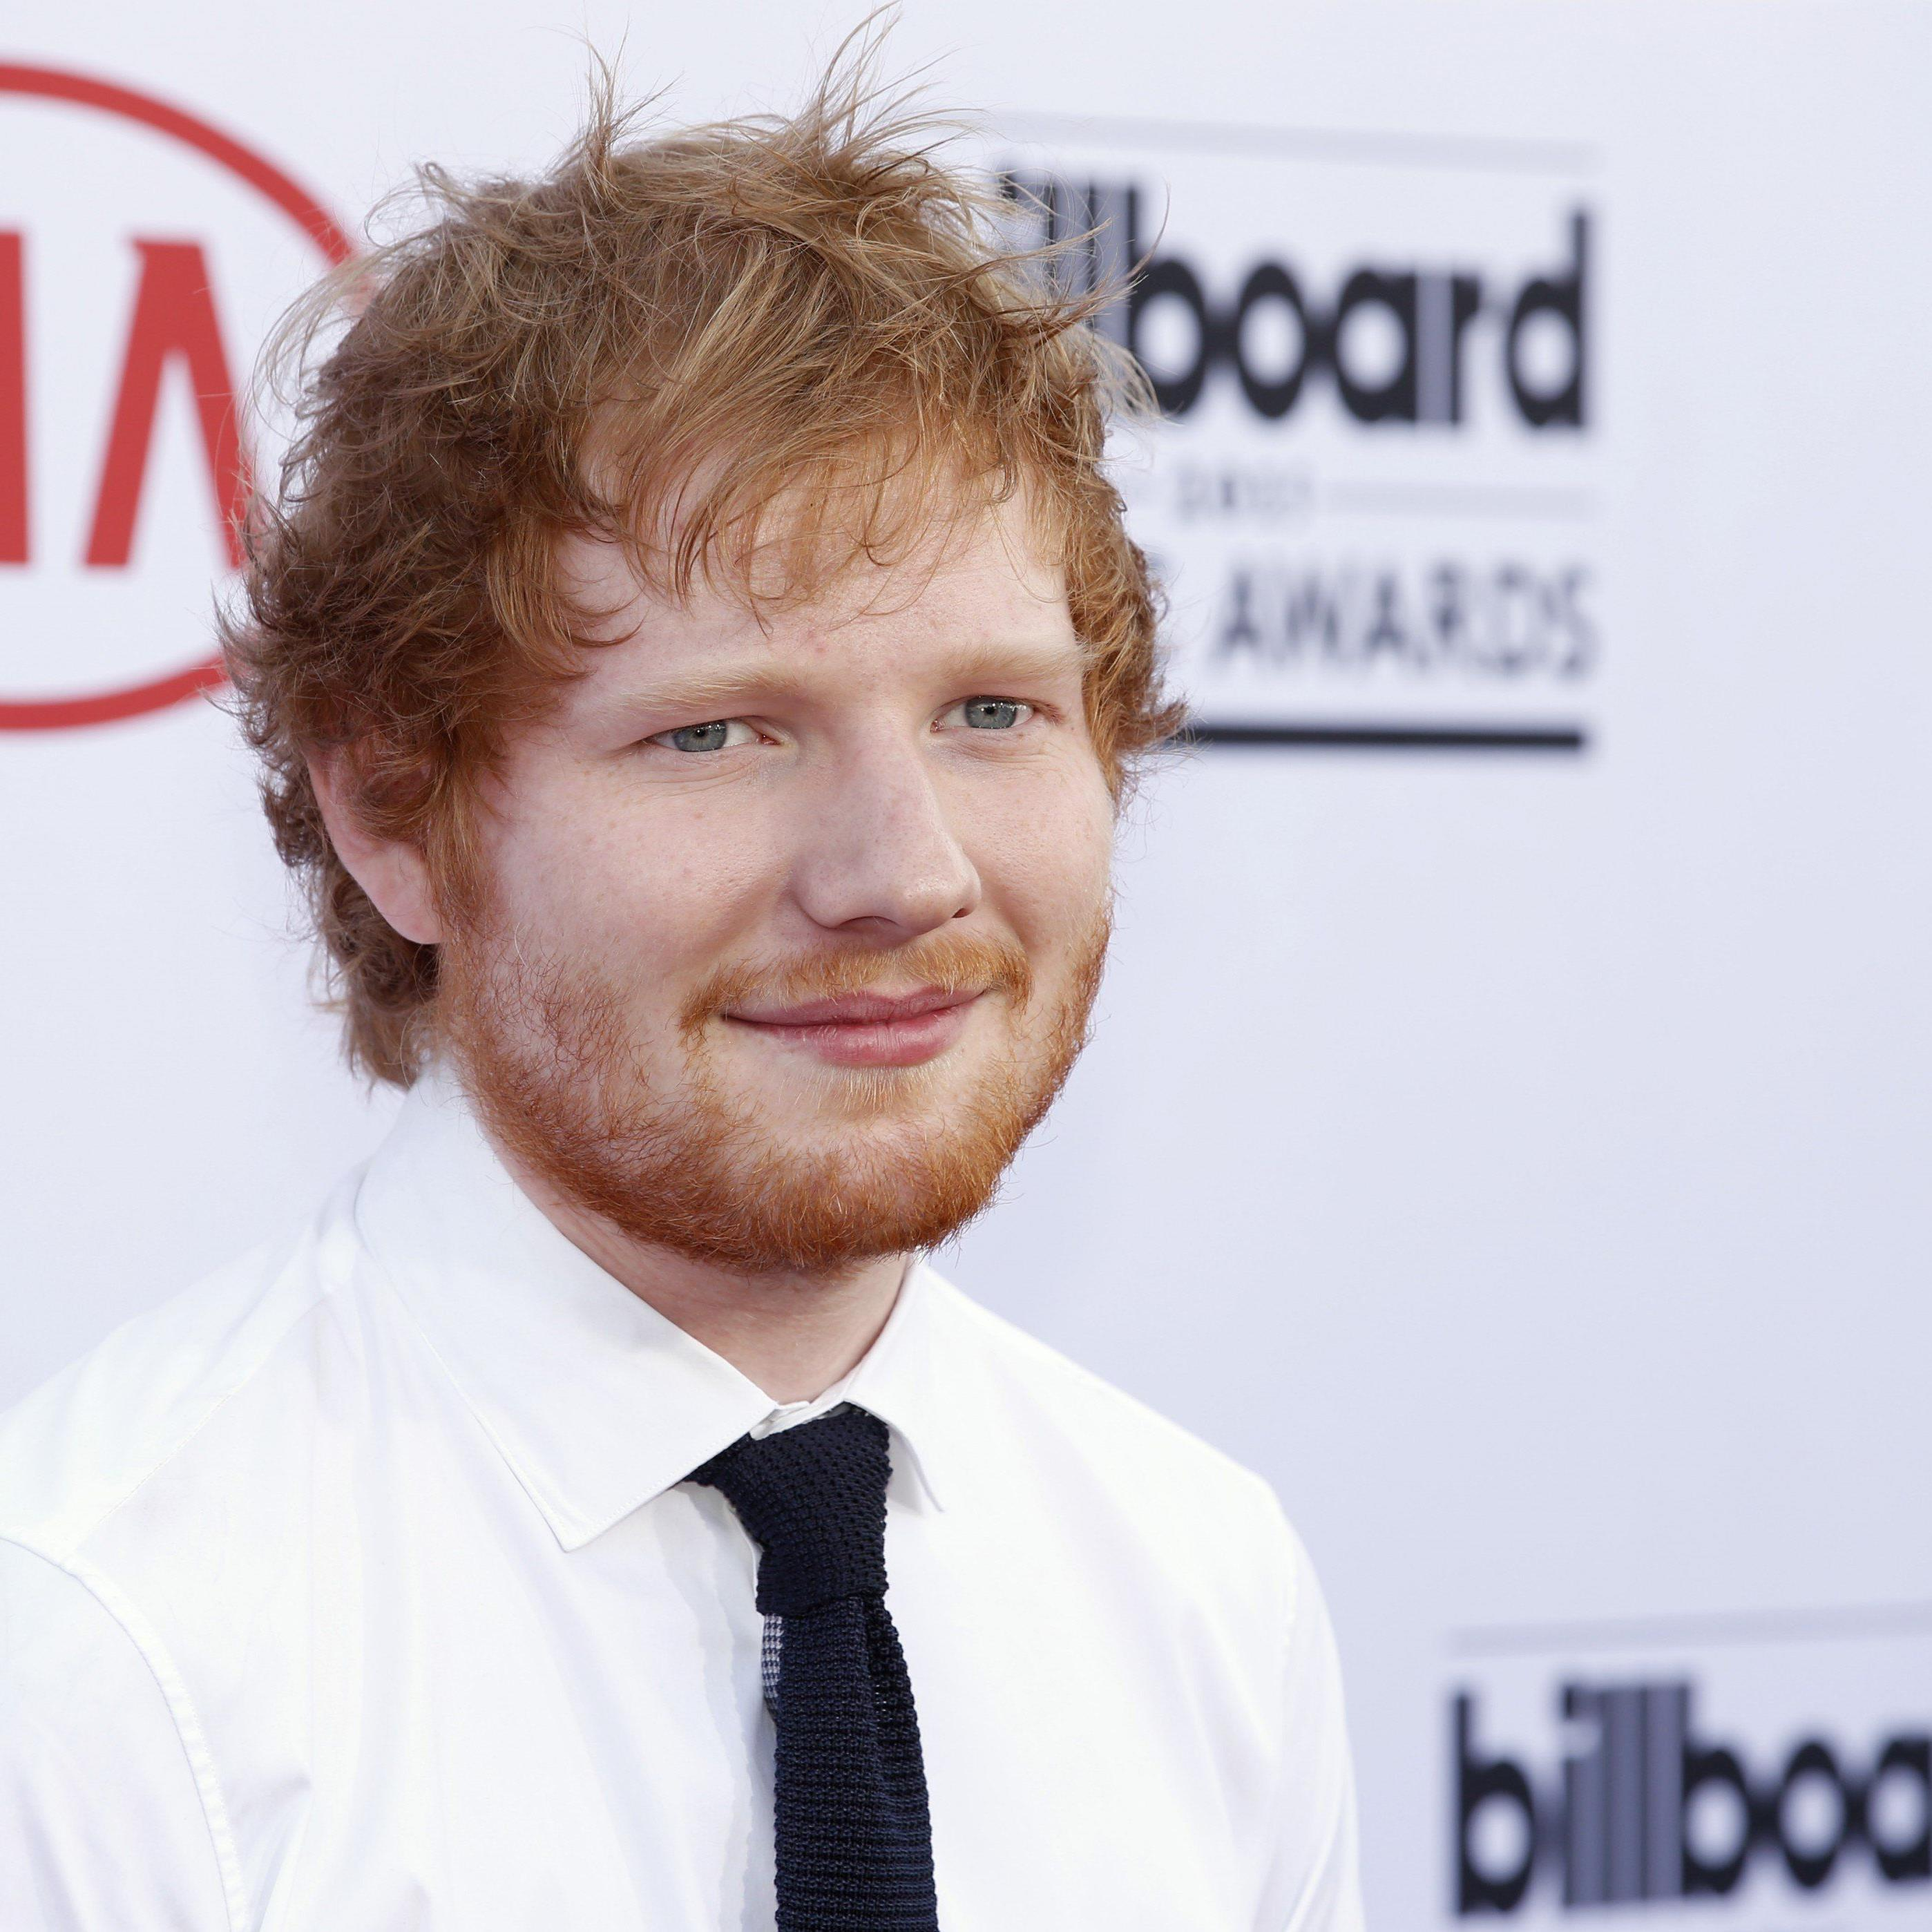 Ed Sheeran hat ein neues Tattoo